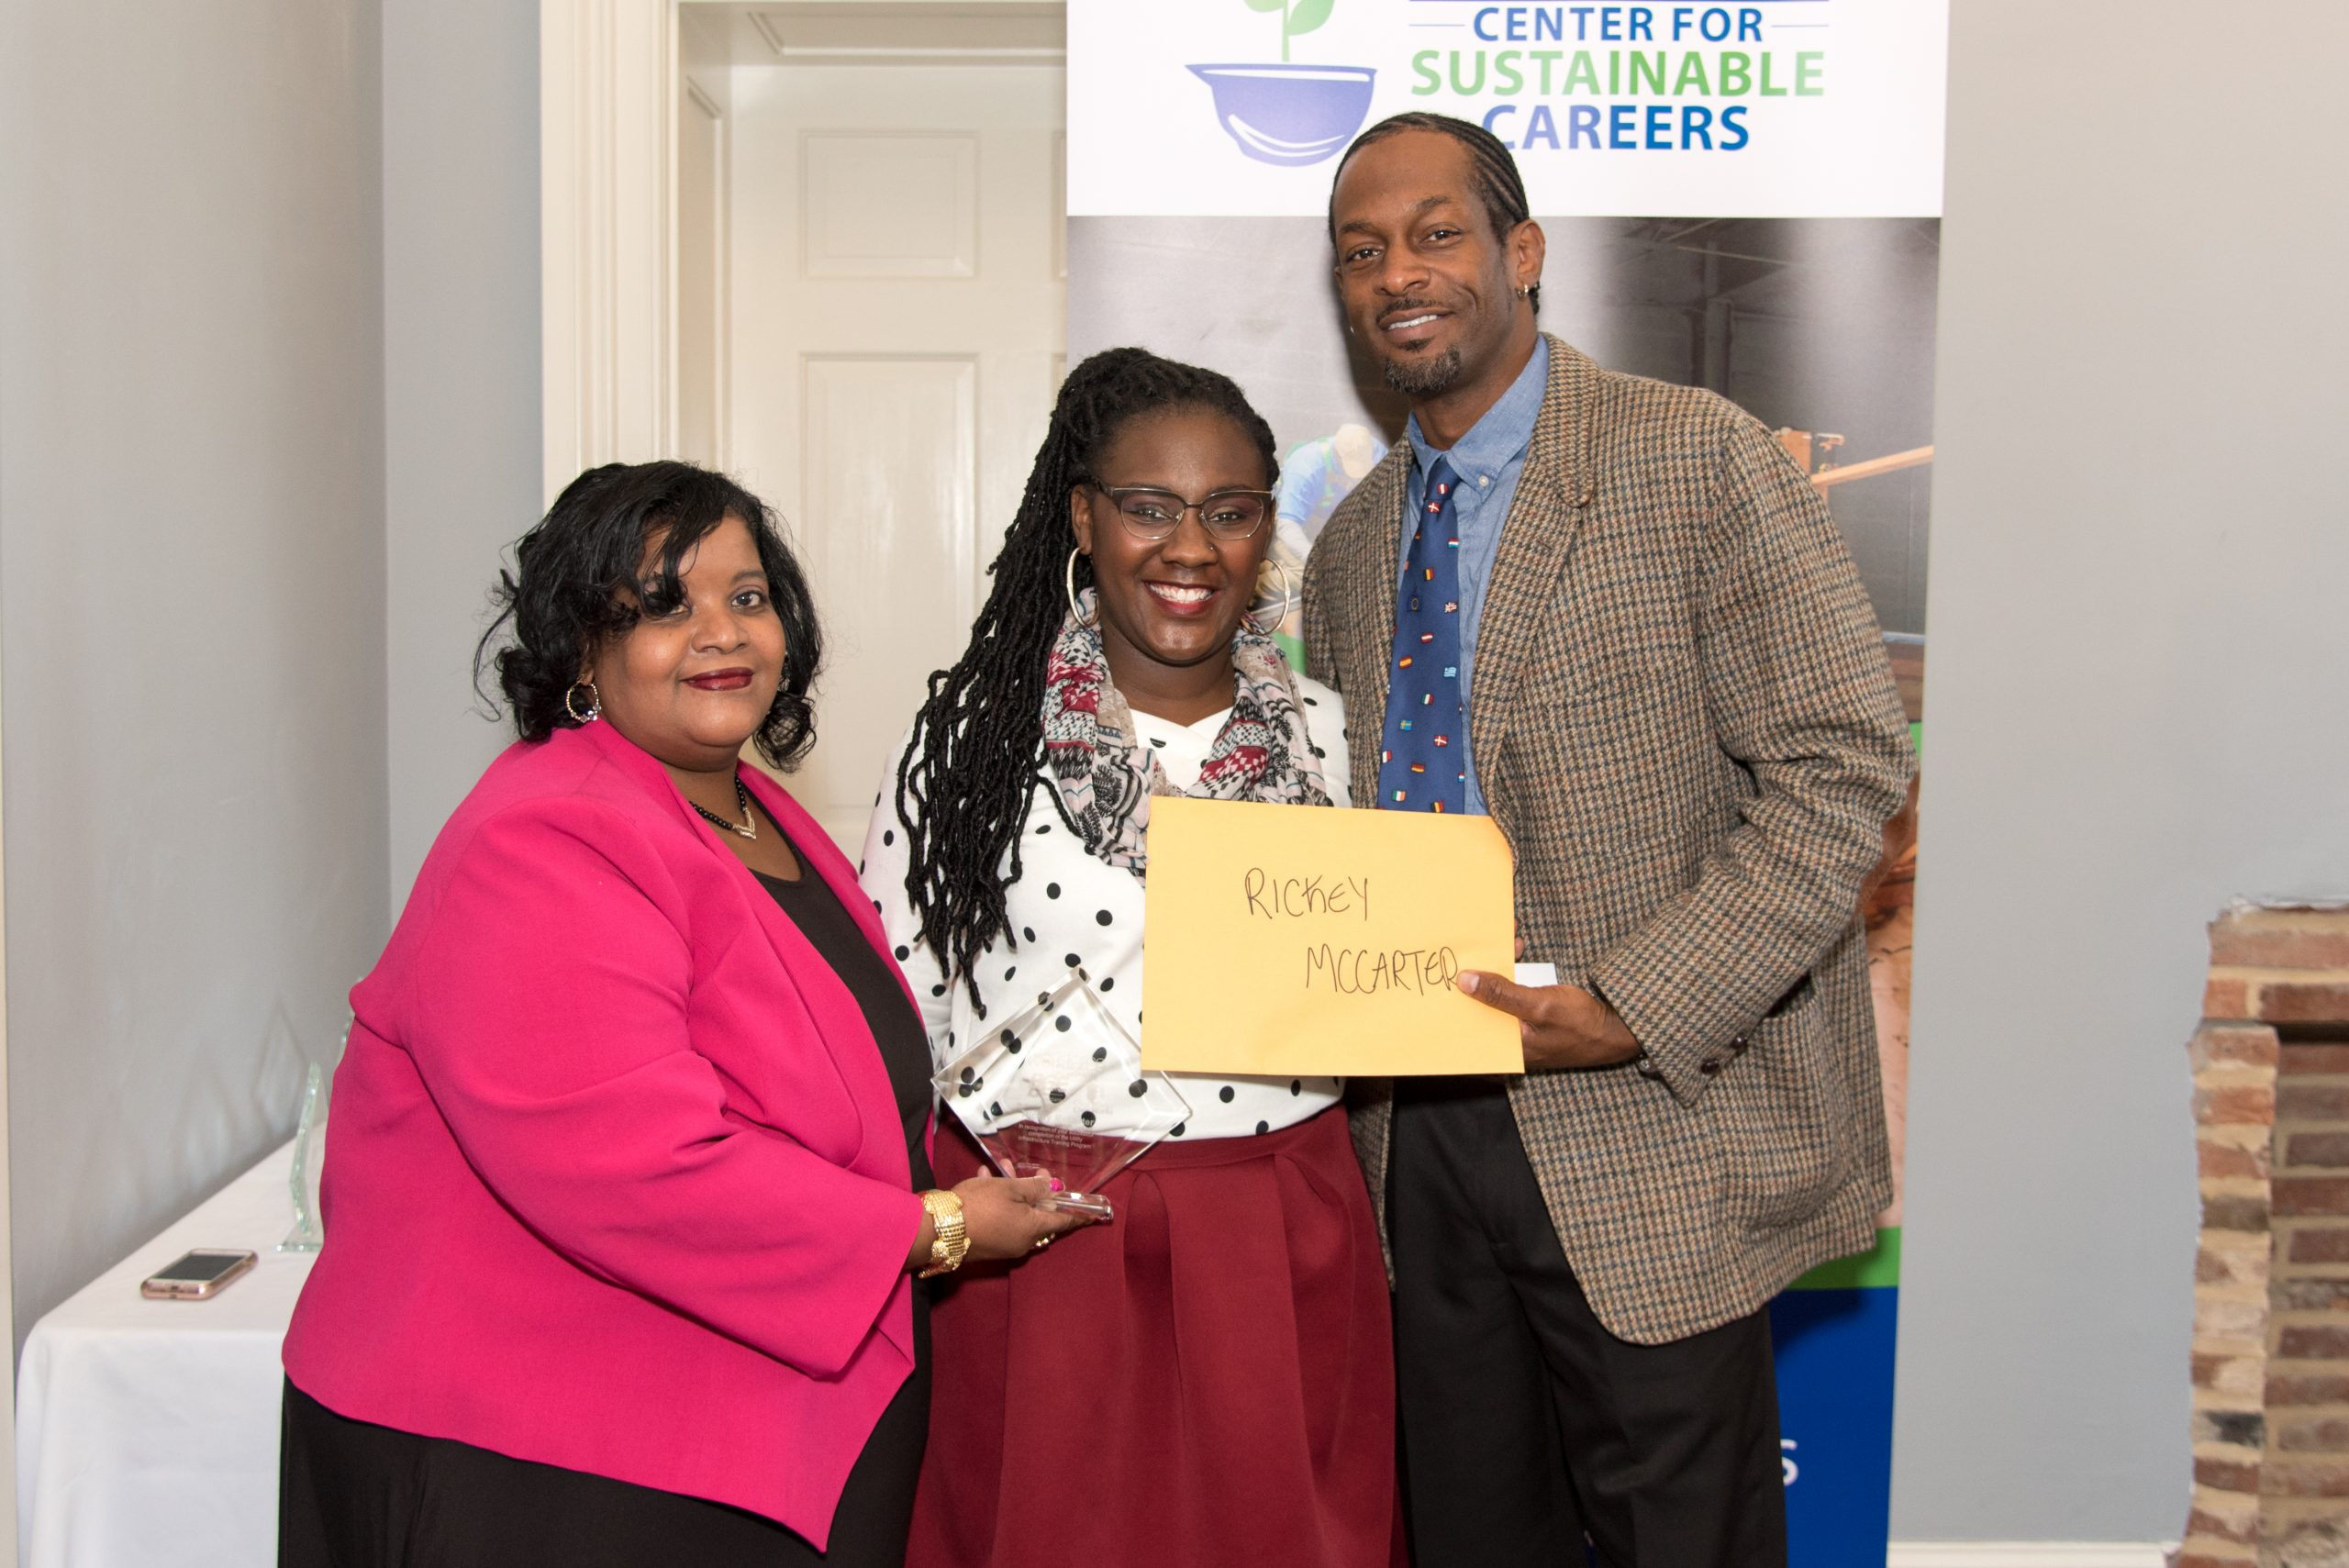 Civic Works staff members Kimberly Armstrong and Vanessa Galloway congratulate Rickey McCarter after graduating from the Workforce Collaborative.